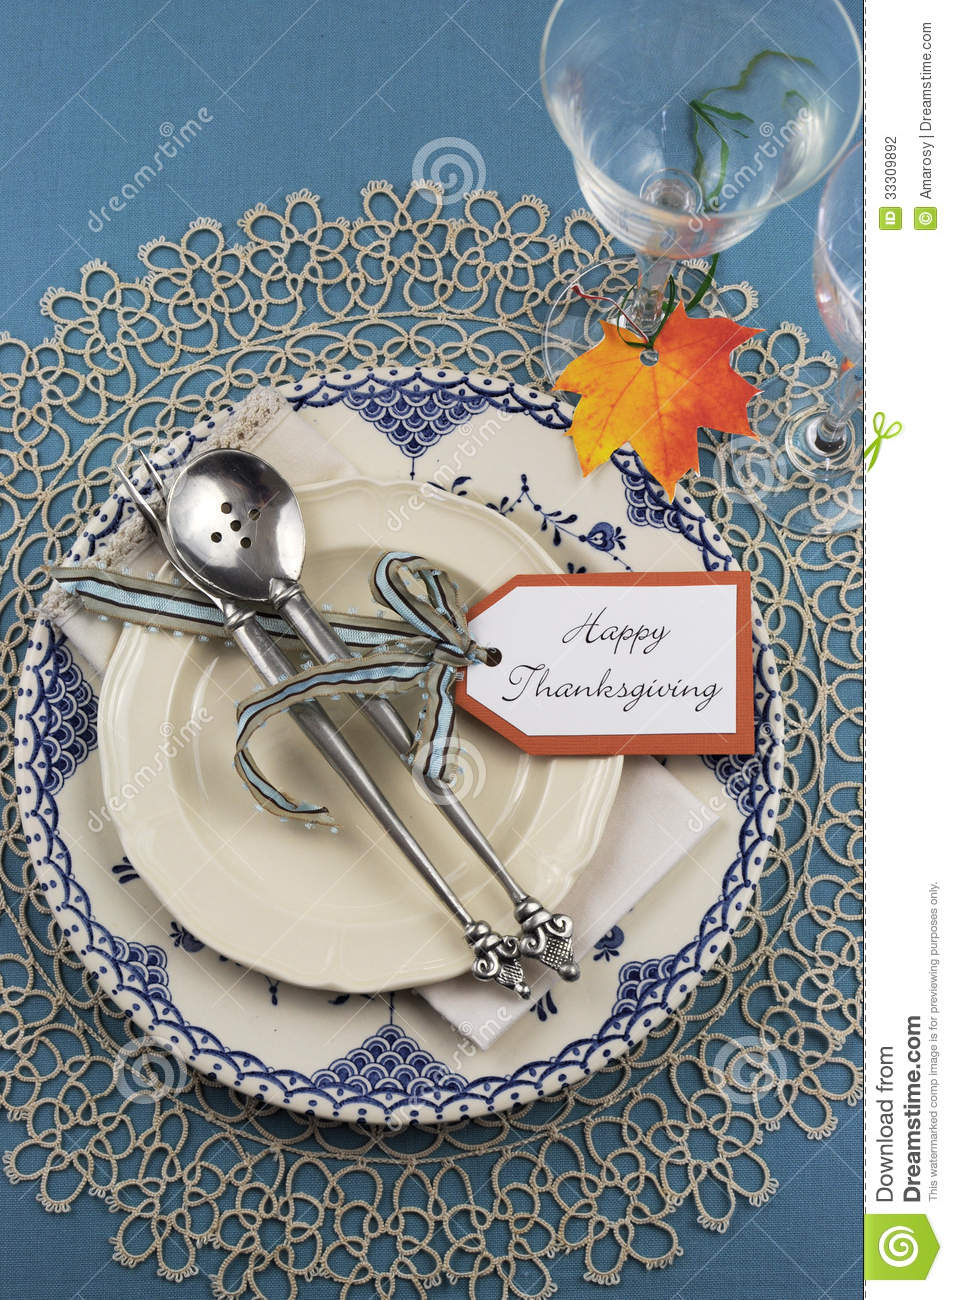 Vintage Thanksgiving Dinner Table Place Setting Vertical